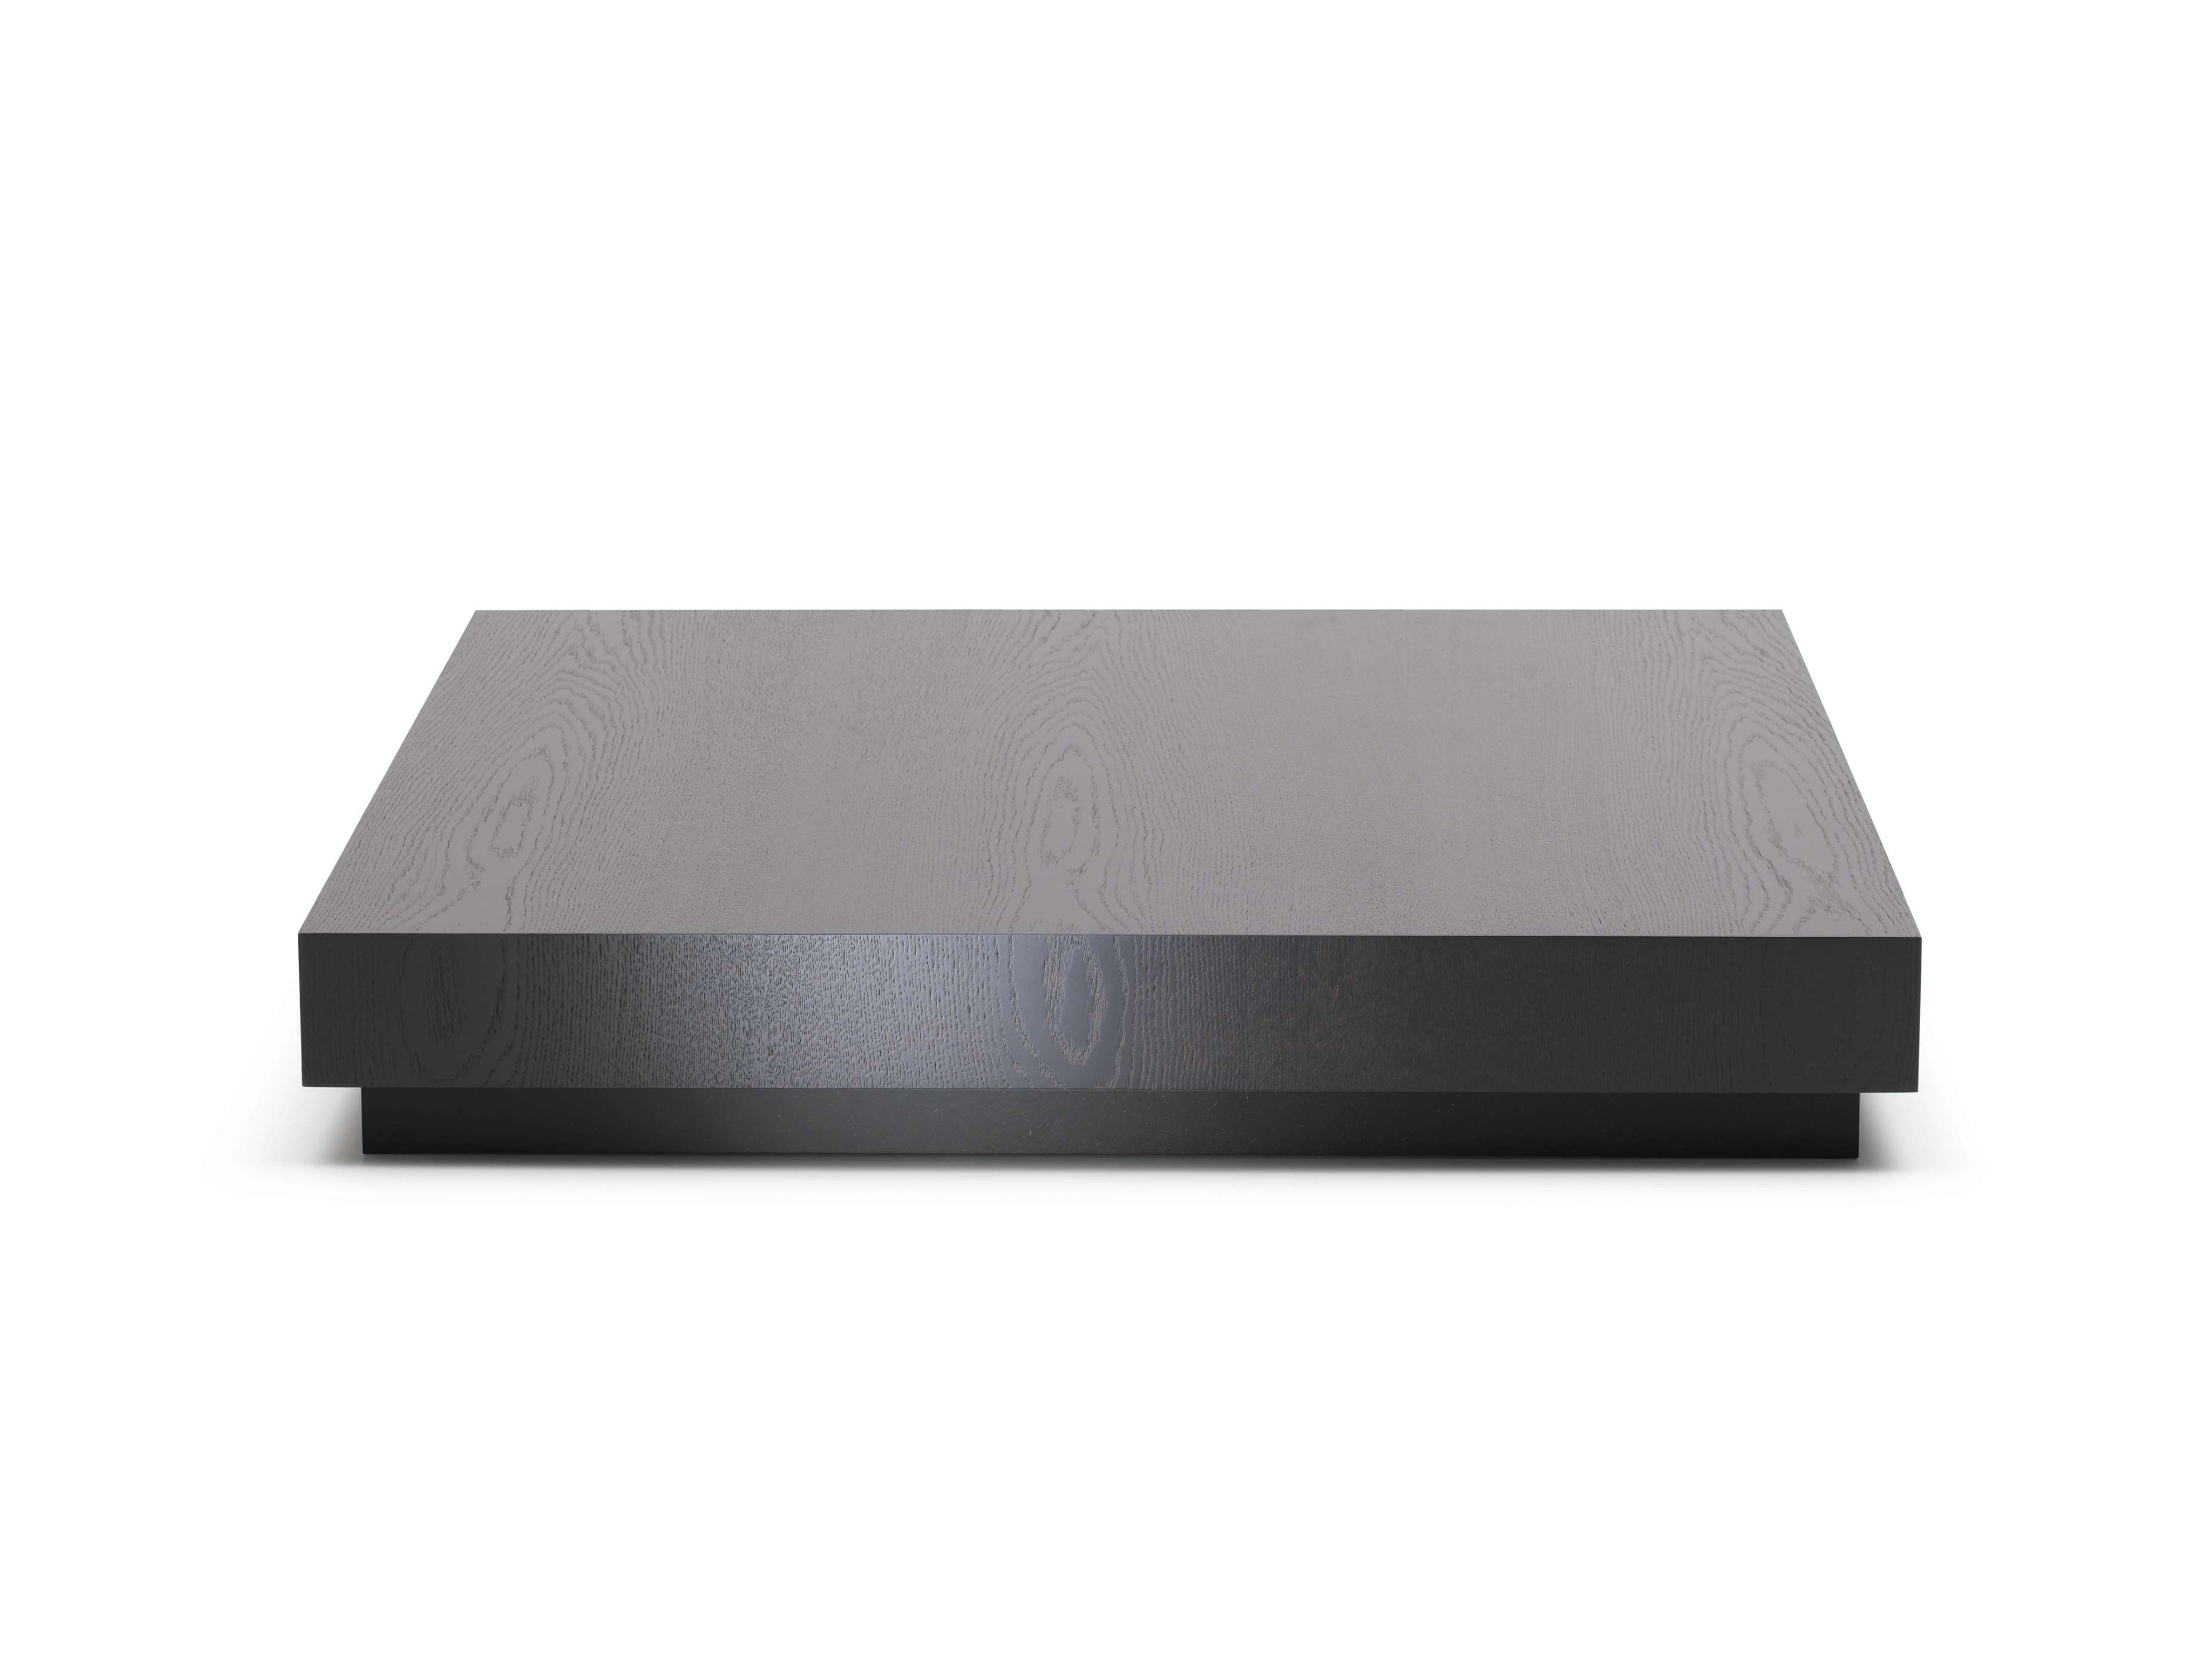 Square Wood Low Profile Coffee Table Painted With Black Color For For Famous Square Coffee Table Modern (View 18 of 20)